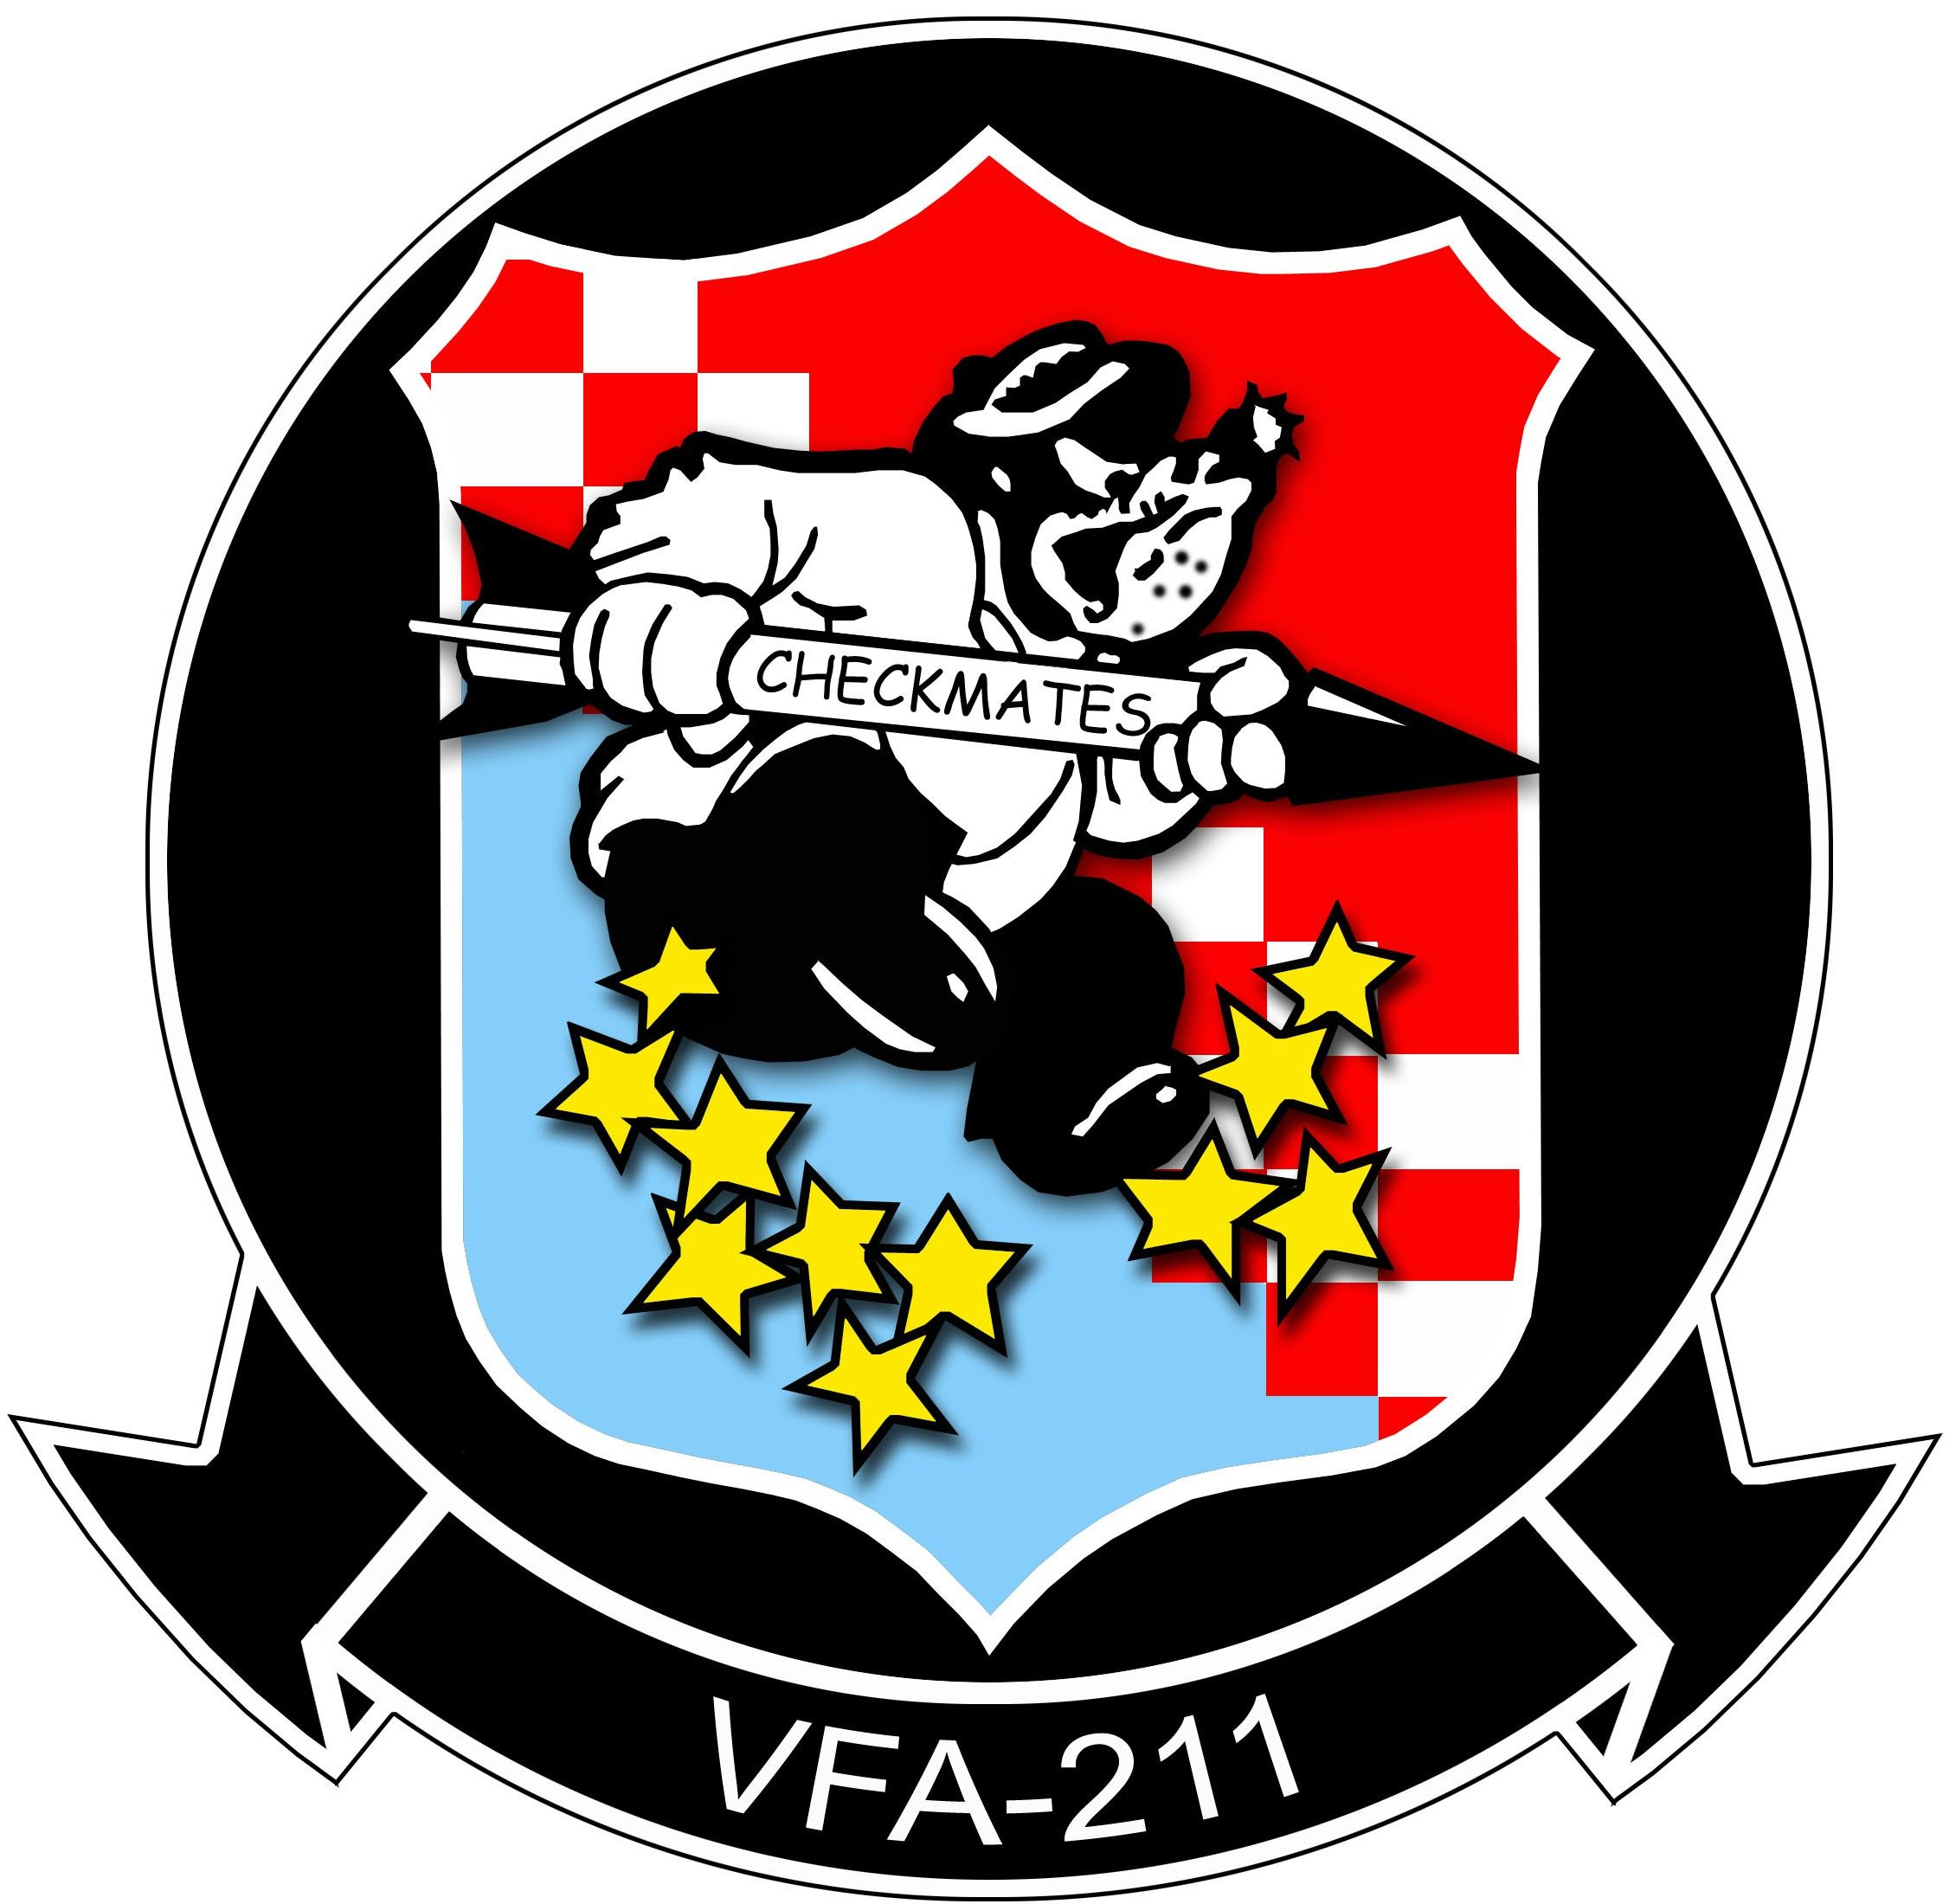 Vfa 211 us navy wikipedia the free encyclopedia evolution fighting checkmates crest insignia patch badge strike fighter squadron super hornet us navy biocorpaavc